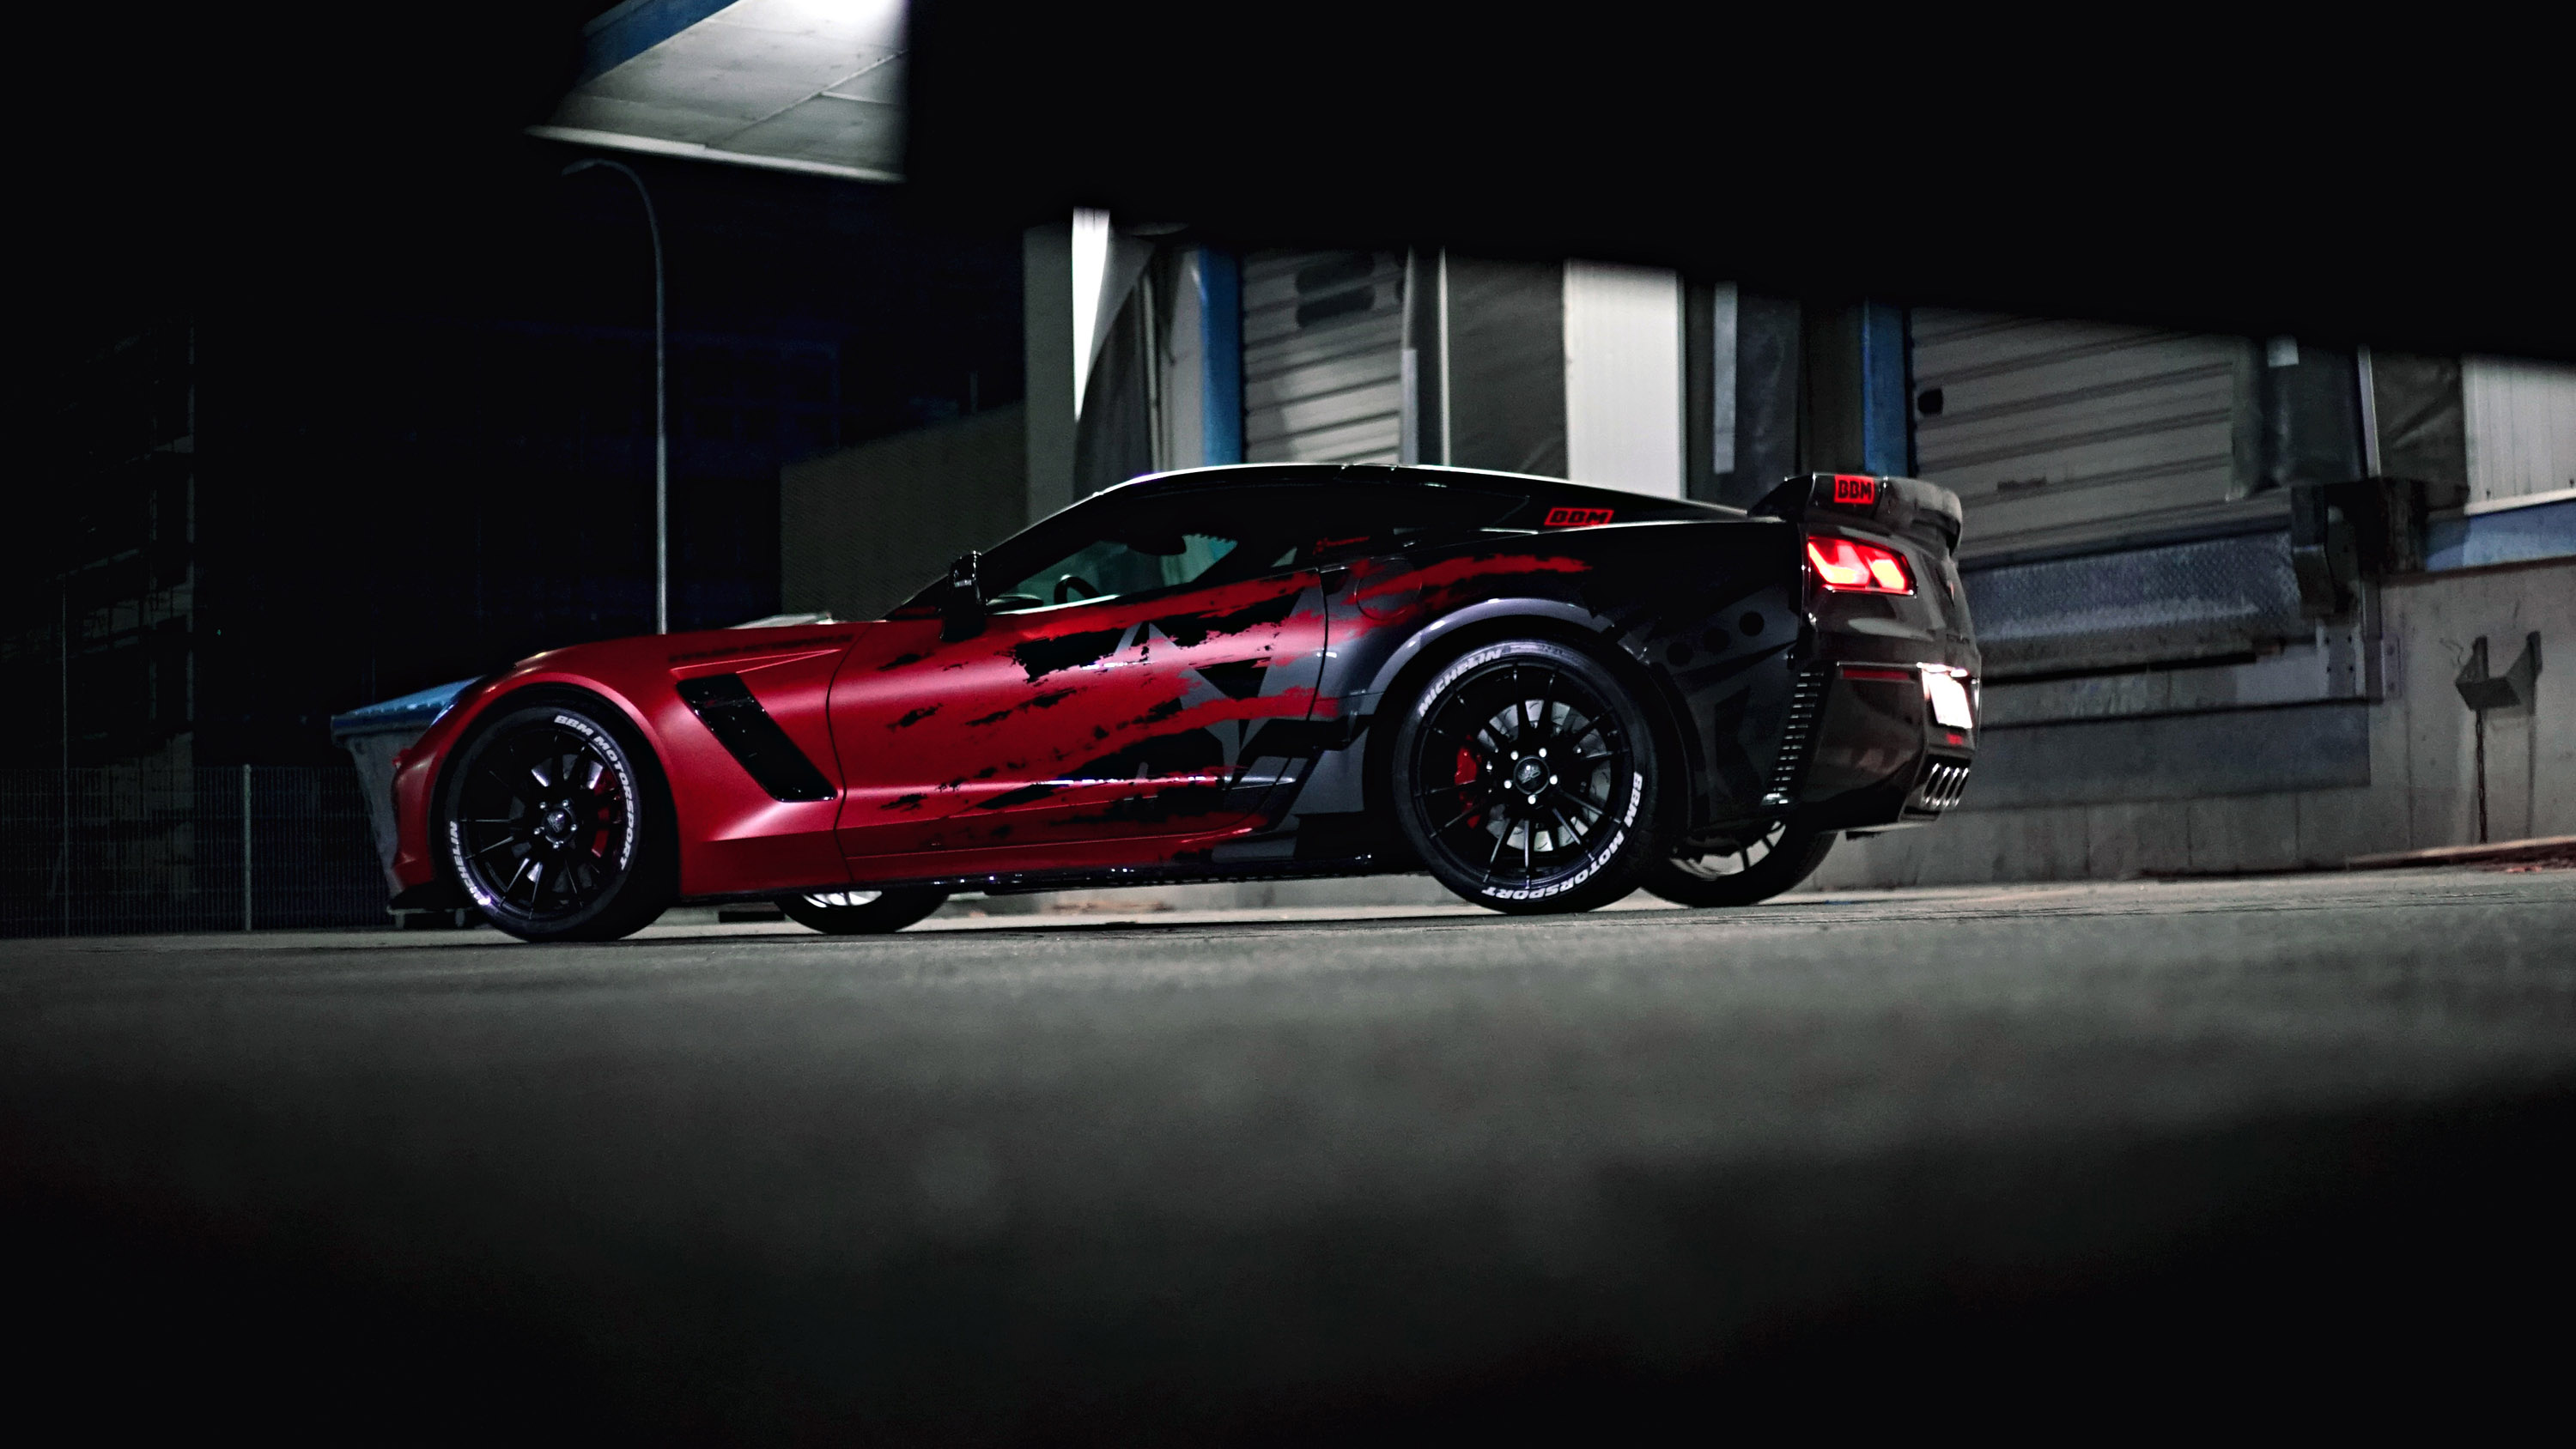 Corvette C7 Stingray >> Chevrolet Corvette C7 Z06 by BBM MOTORSPORT